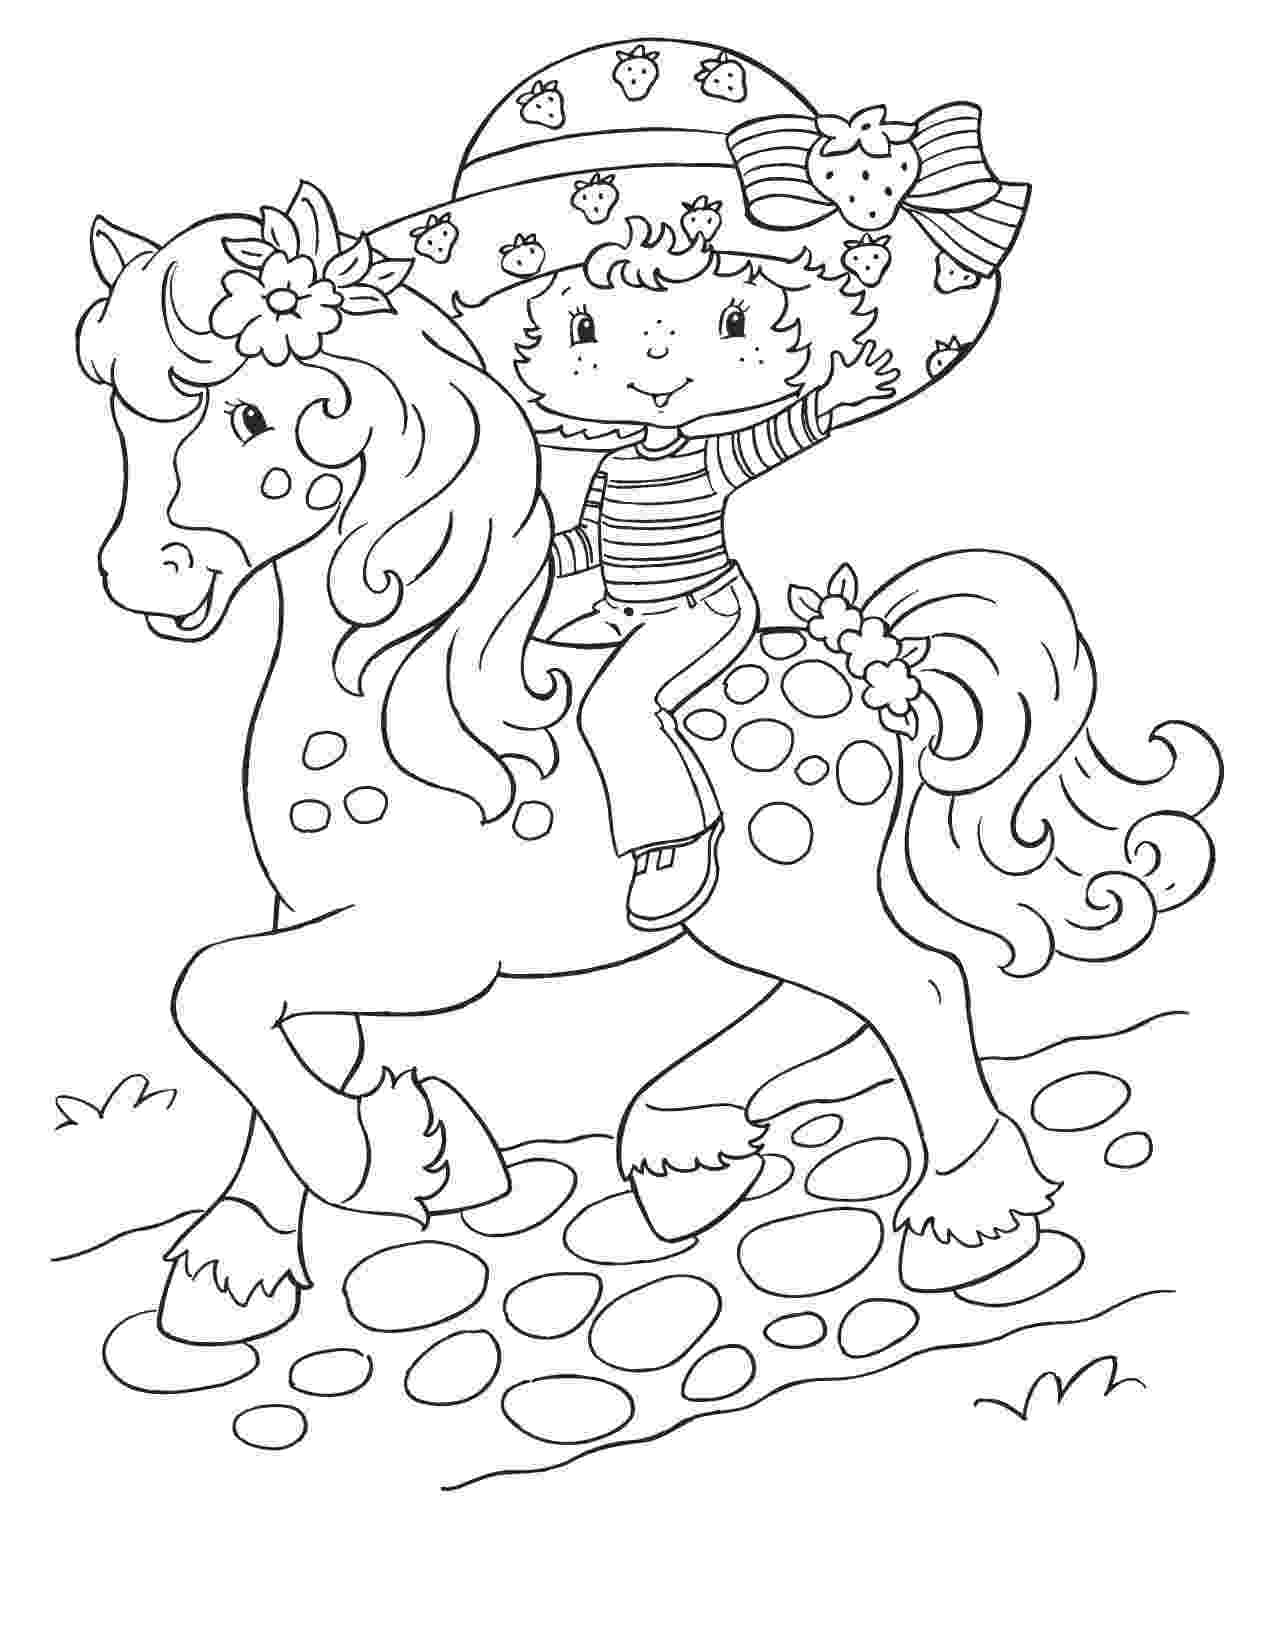 strawberry shortcake coloring page strawberry shortcake gardening kolorowanki wzory strawberry coloring page shortcake